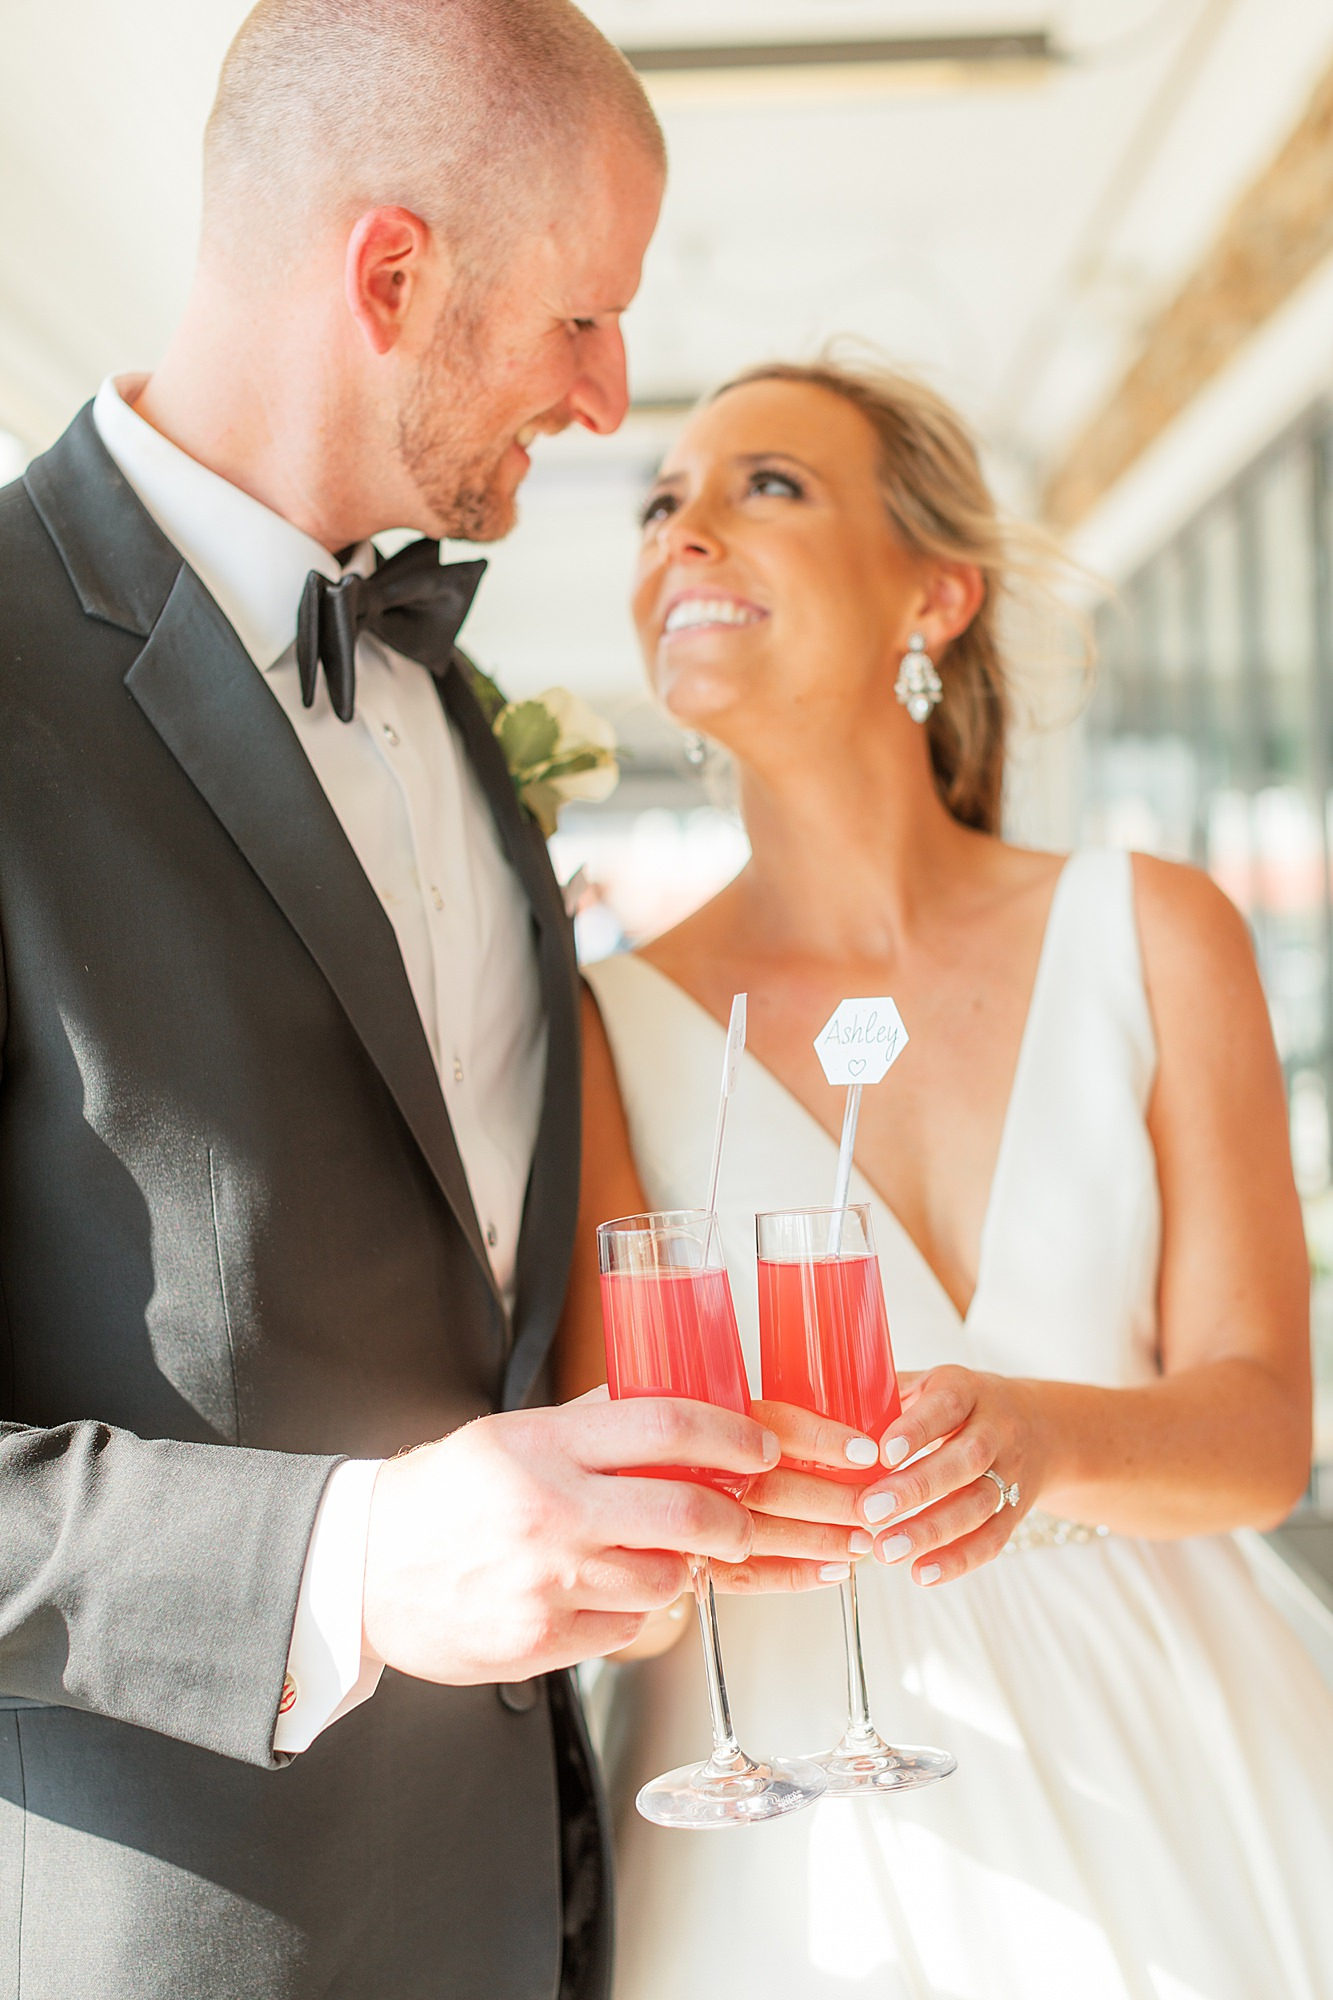 Natural and Vibrant Wedding Photography at the Reeds in Stone Harbor NJ by Magdalena Studios 0049